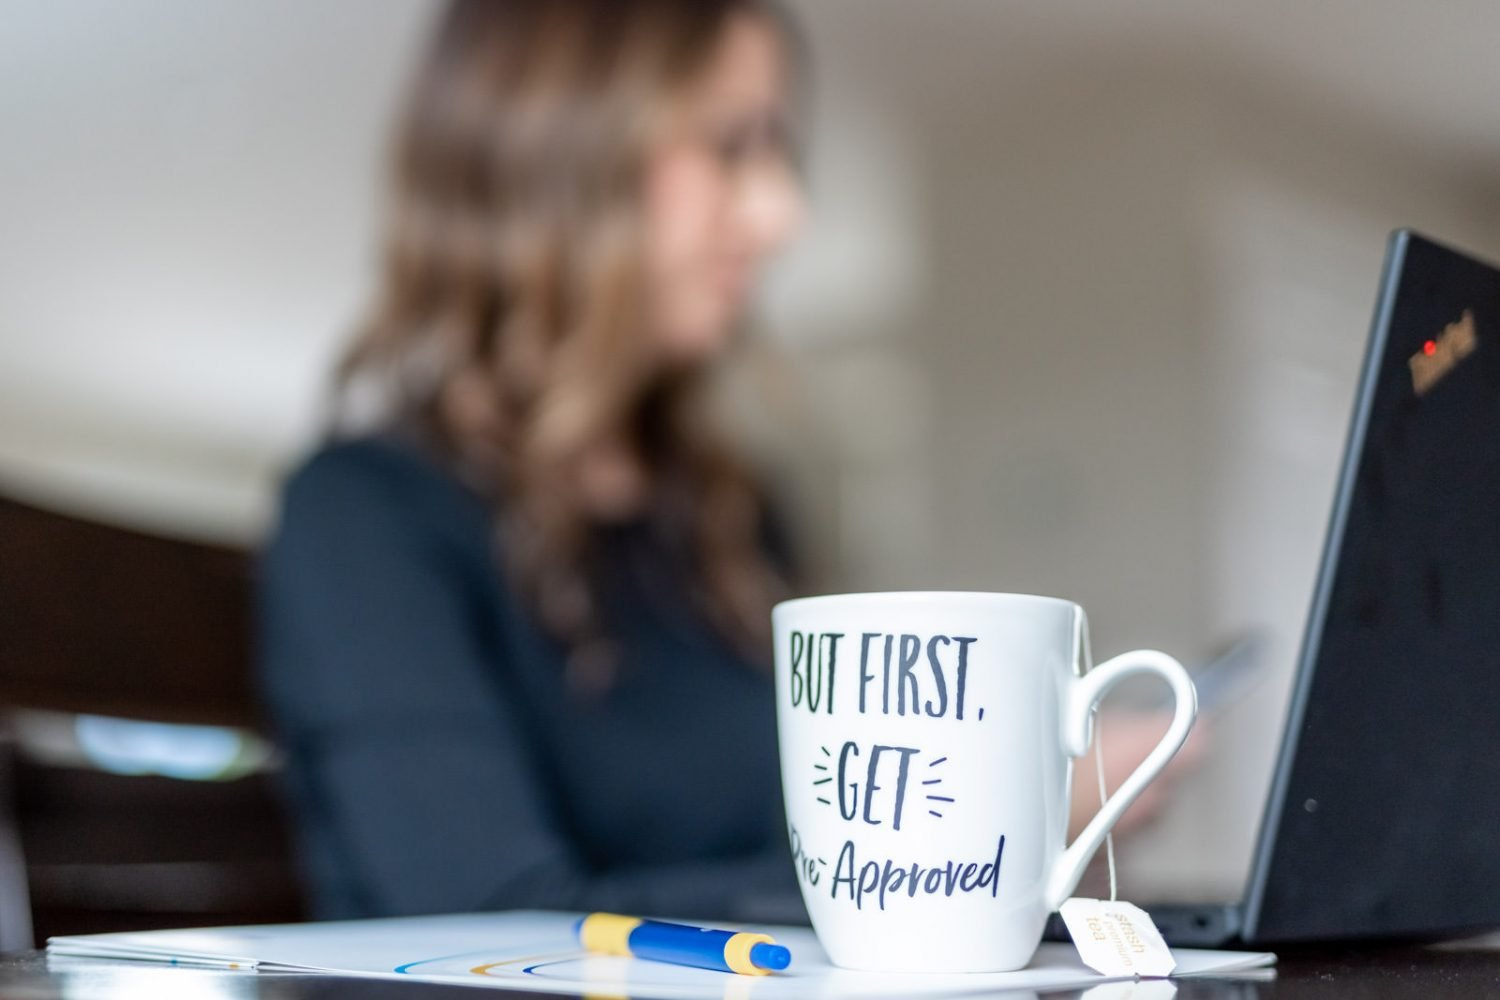 pre-approved mortgage mug for personal branding photoshoot